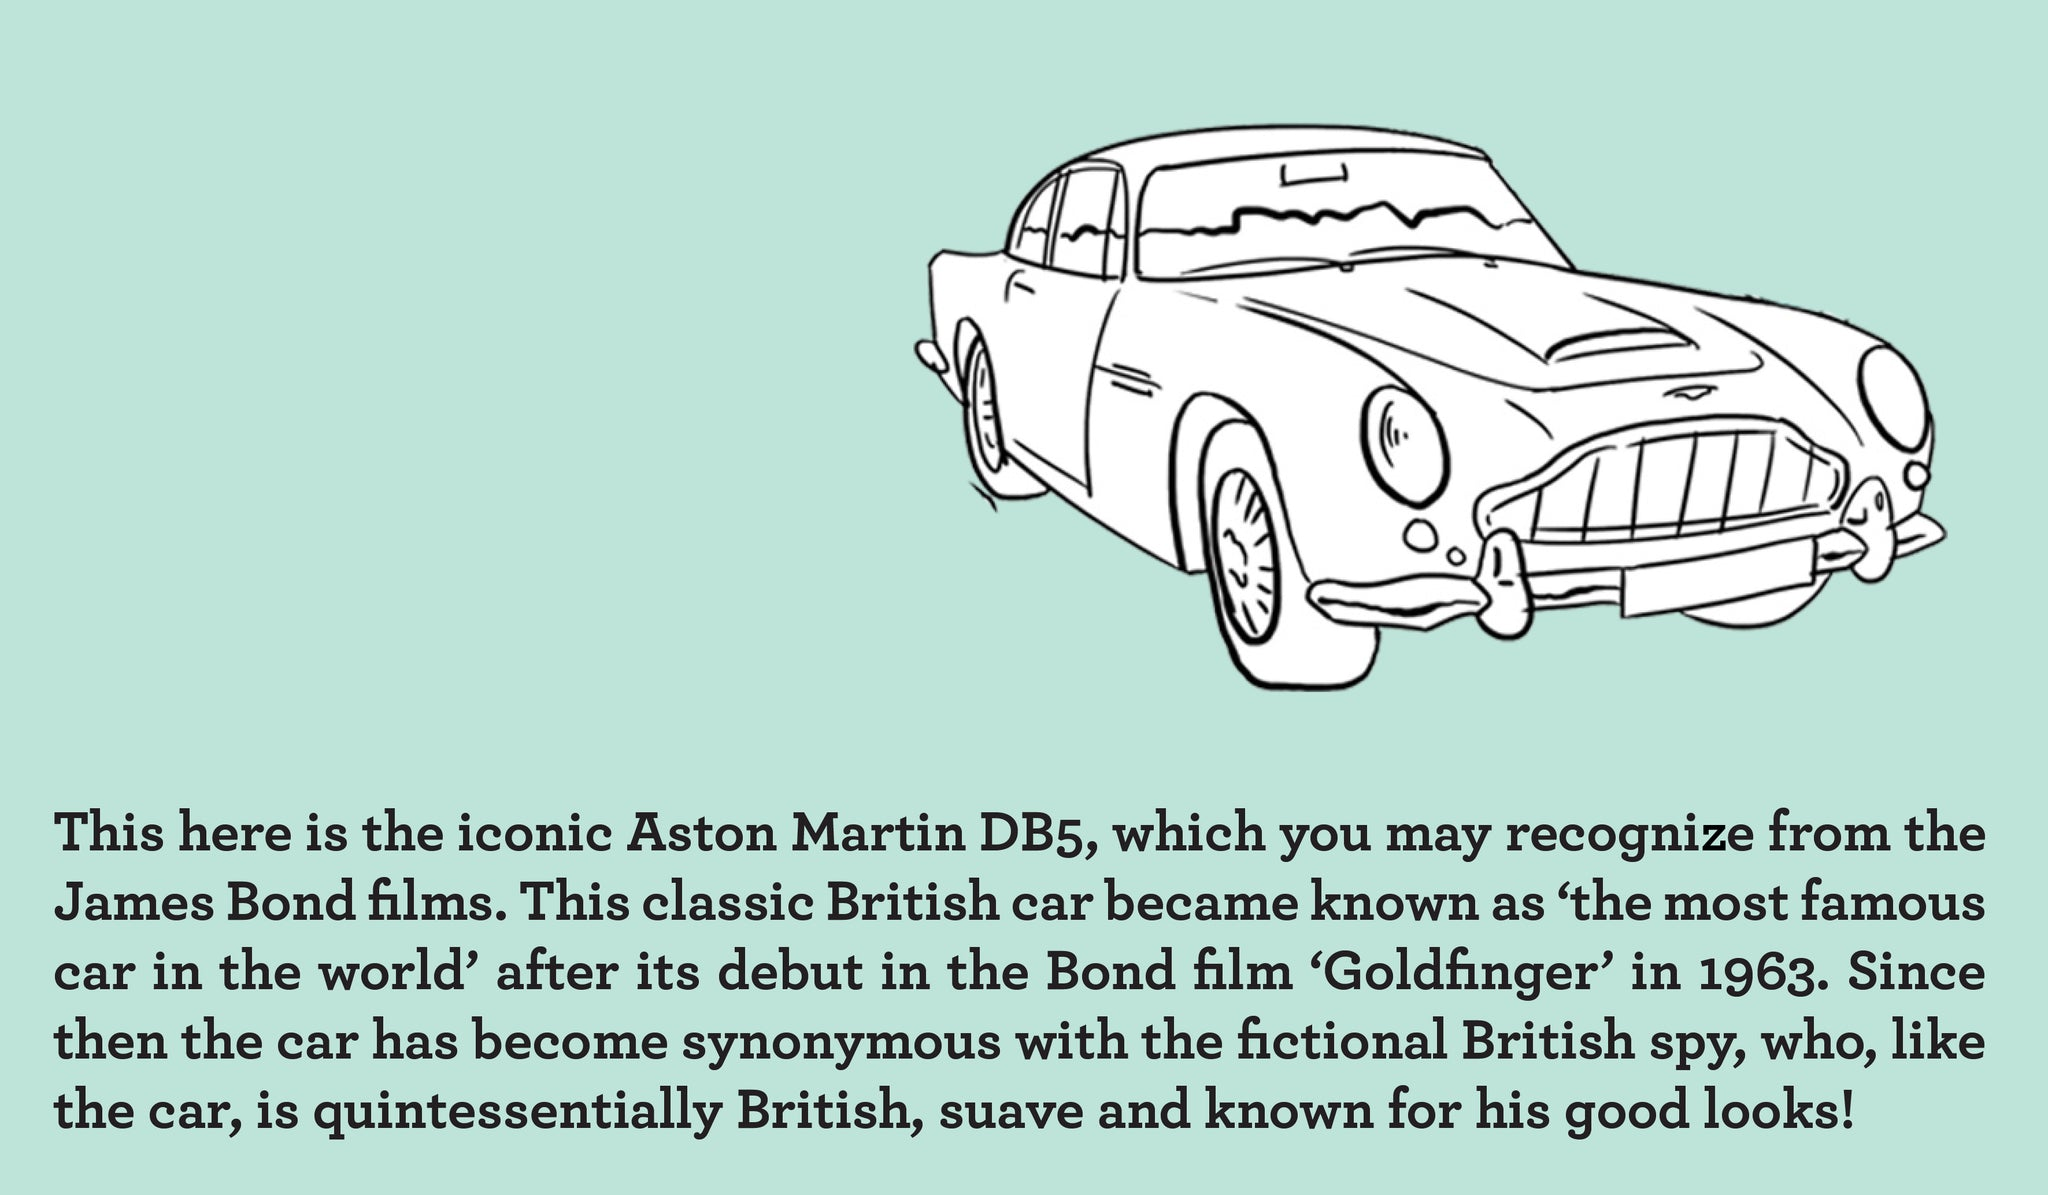 aston martin facts for kids